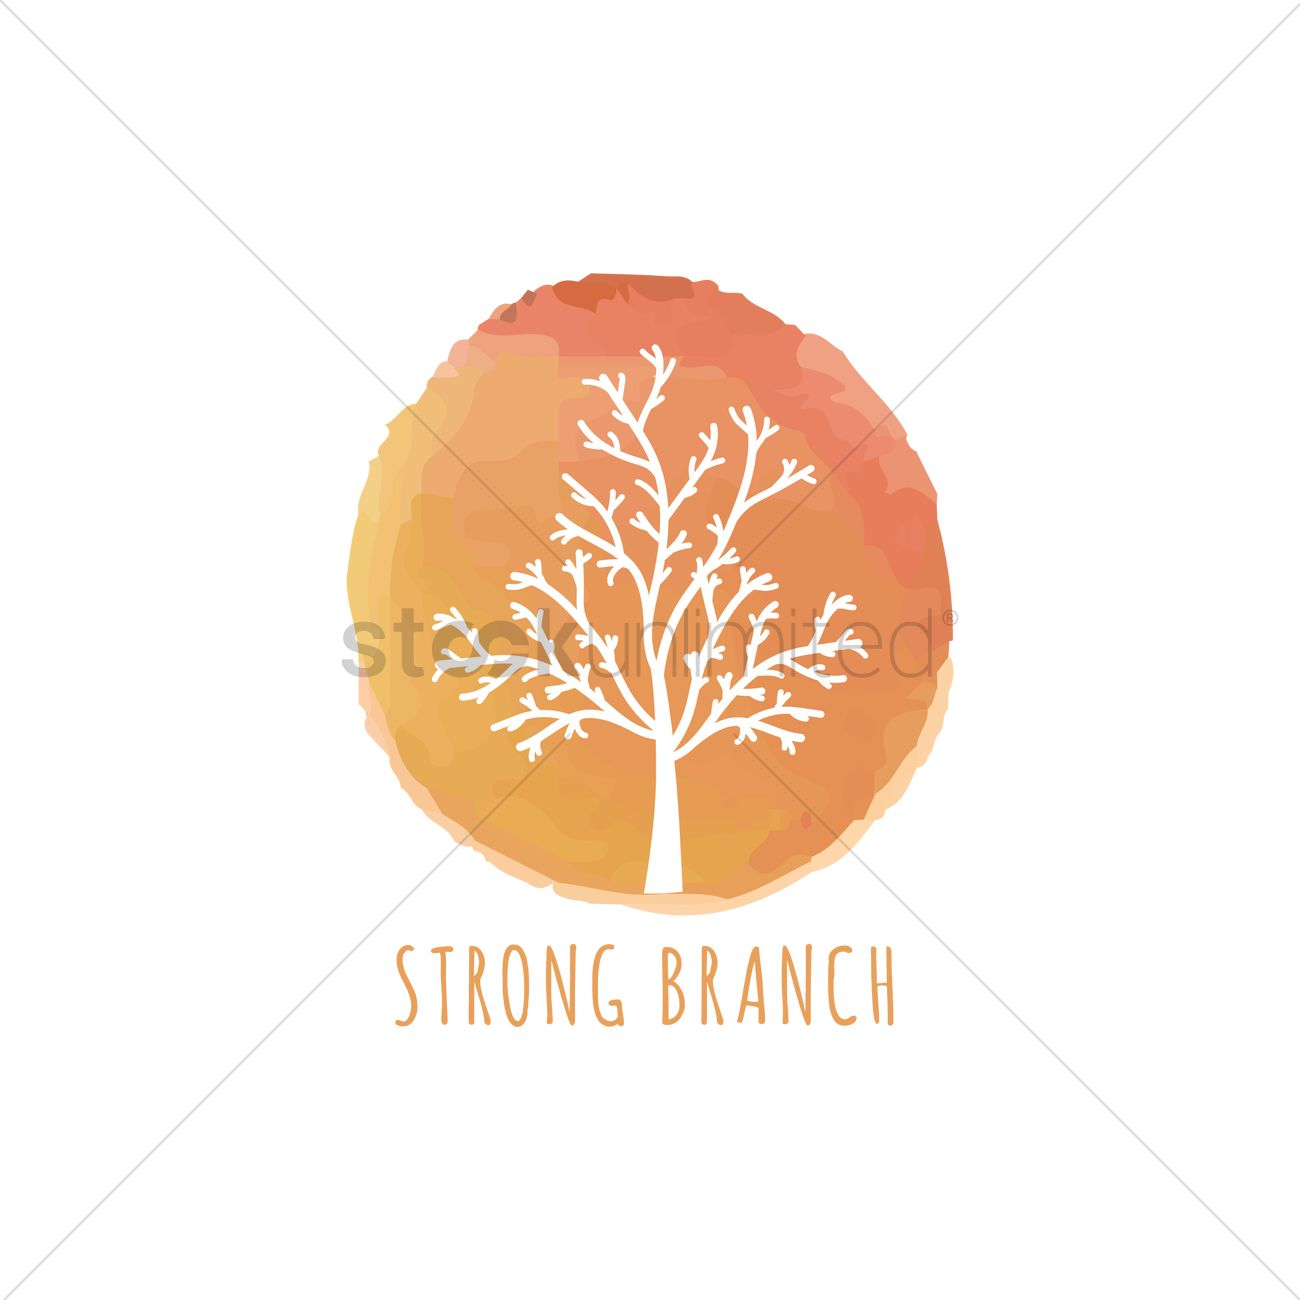 Strong branch Vector Image.